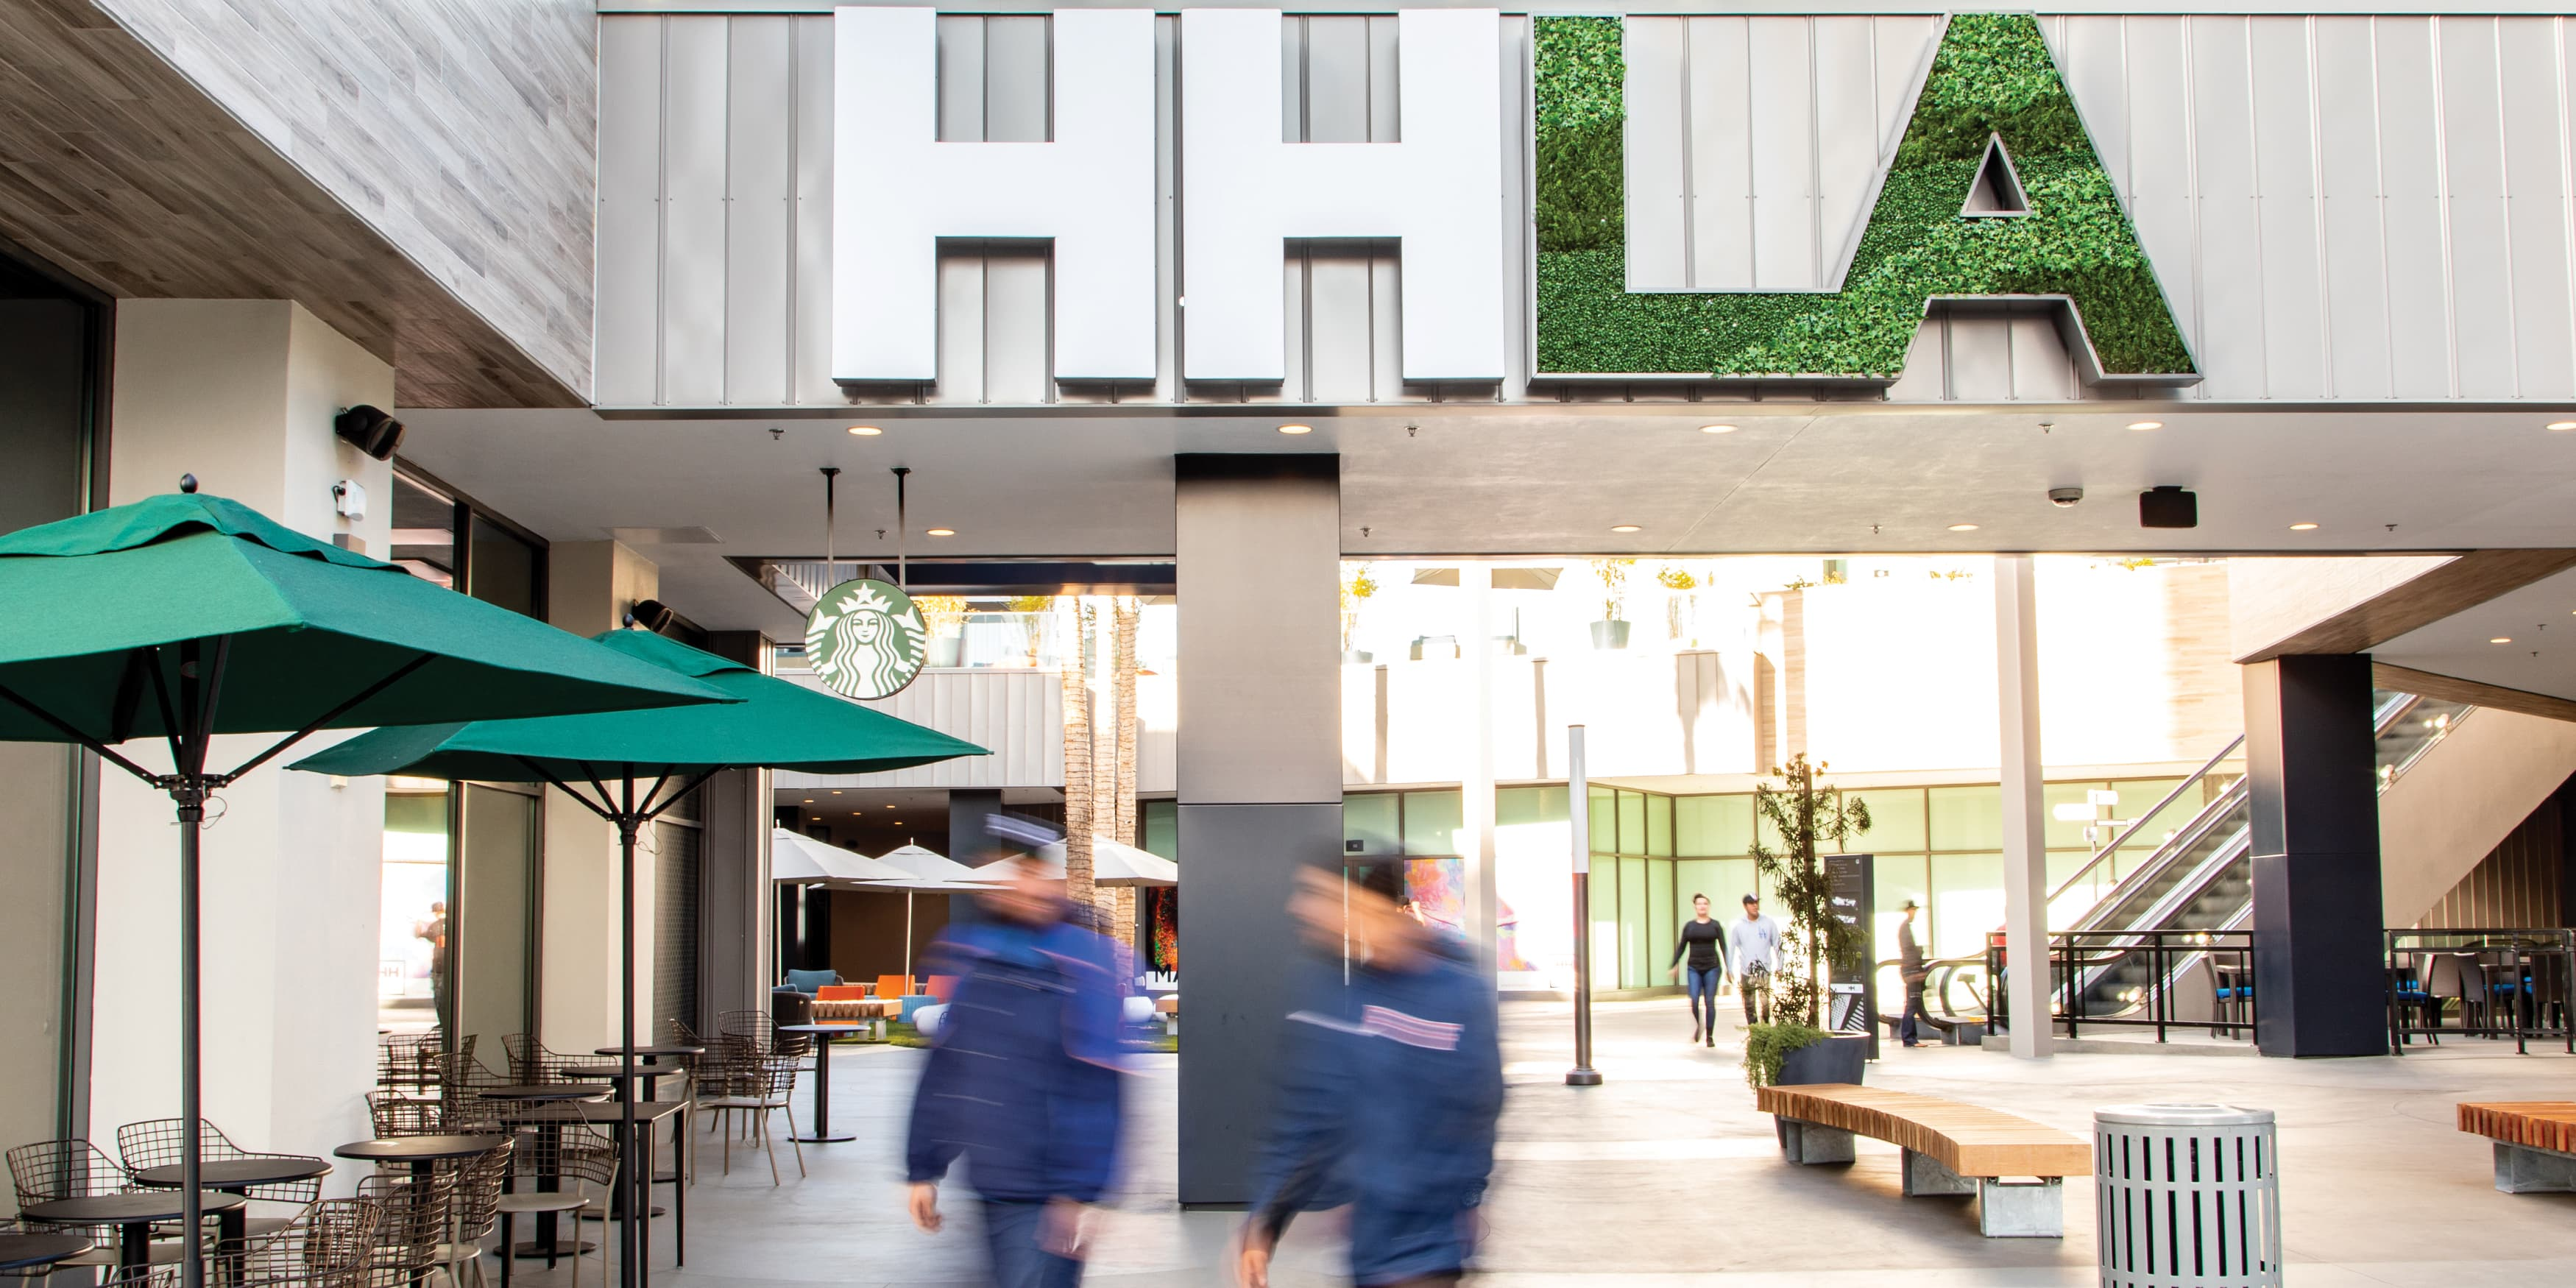 HHLA project identity signage and placemaking